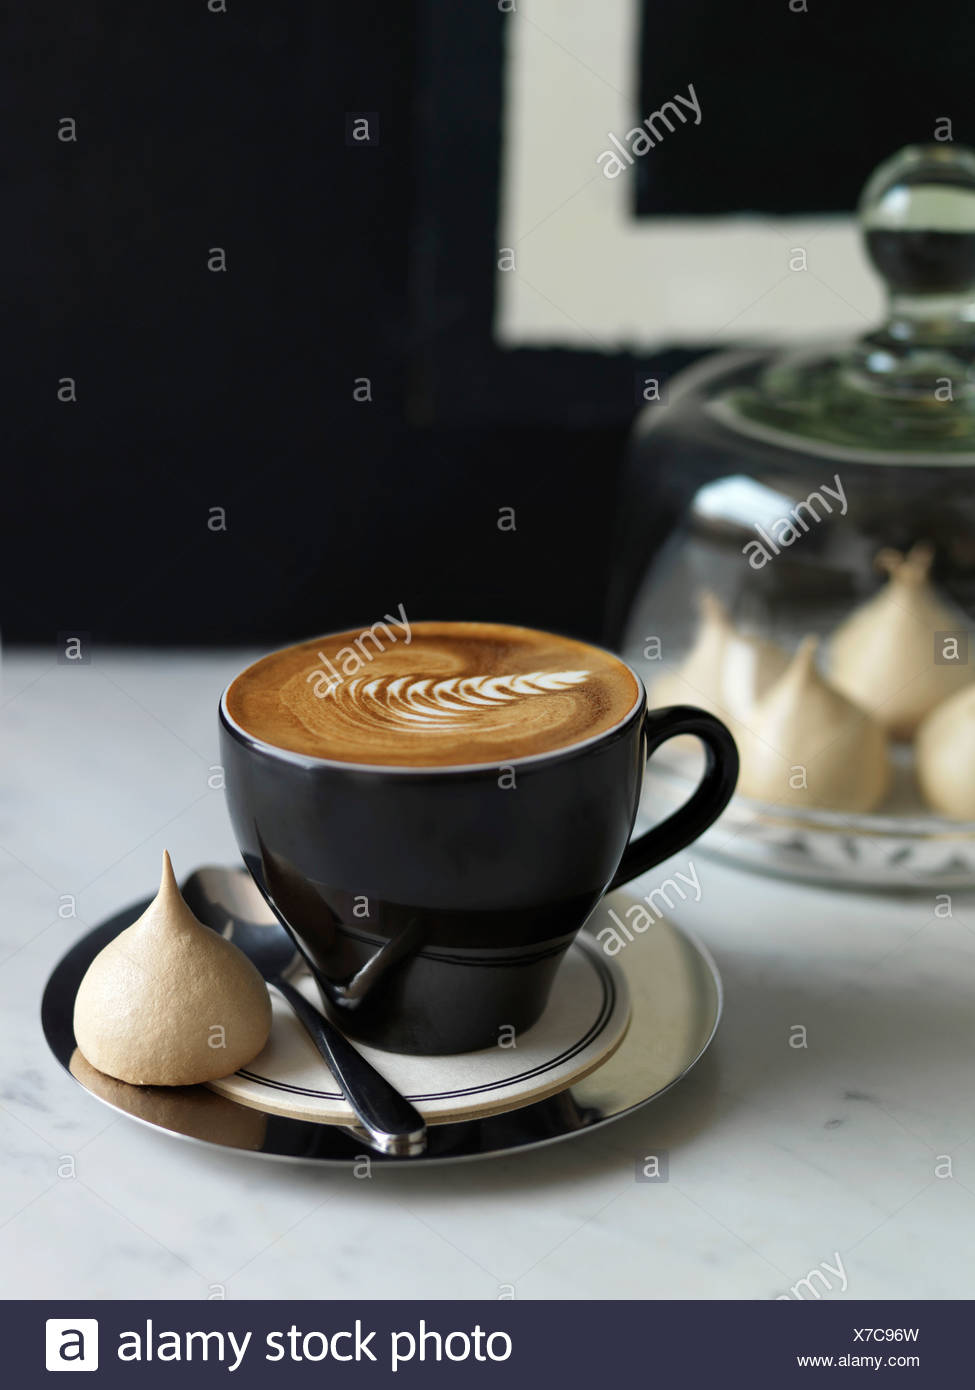 Cup of Cappuccino and a small meringue - Stock Image